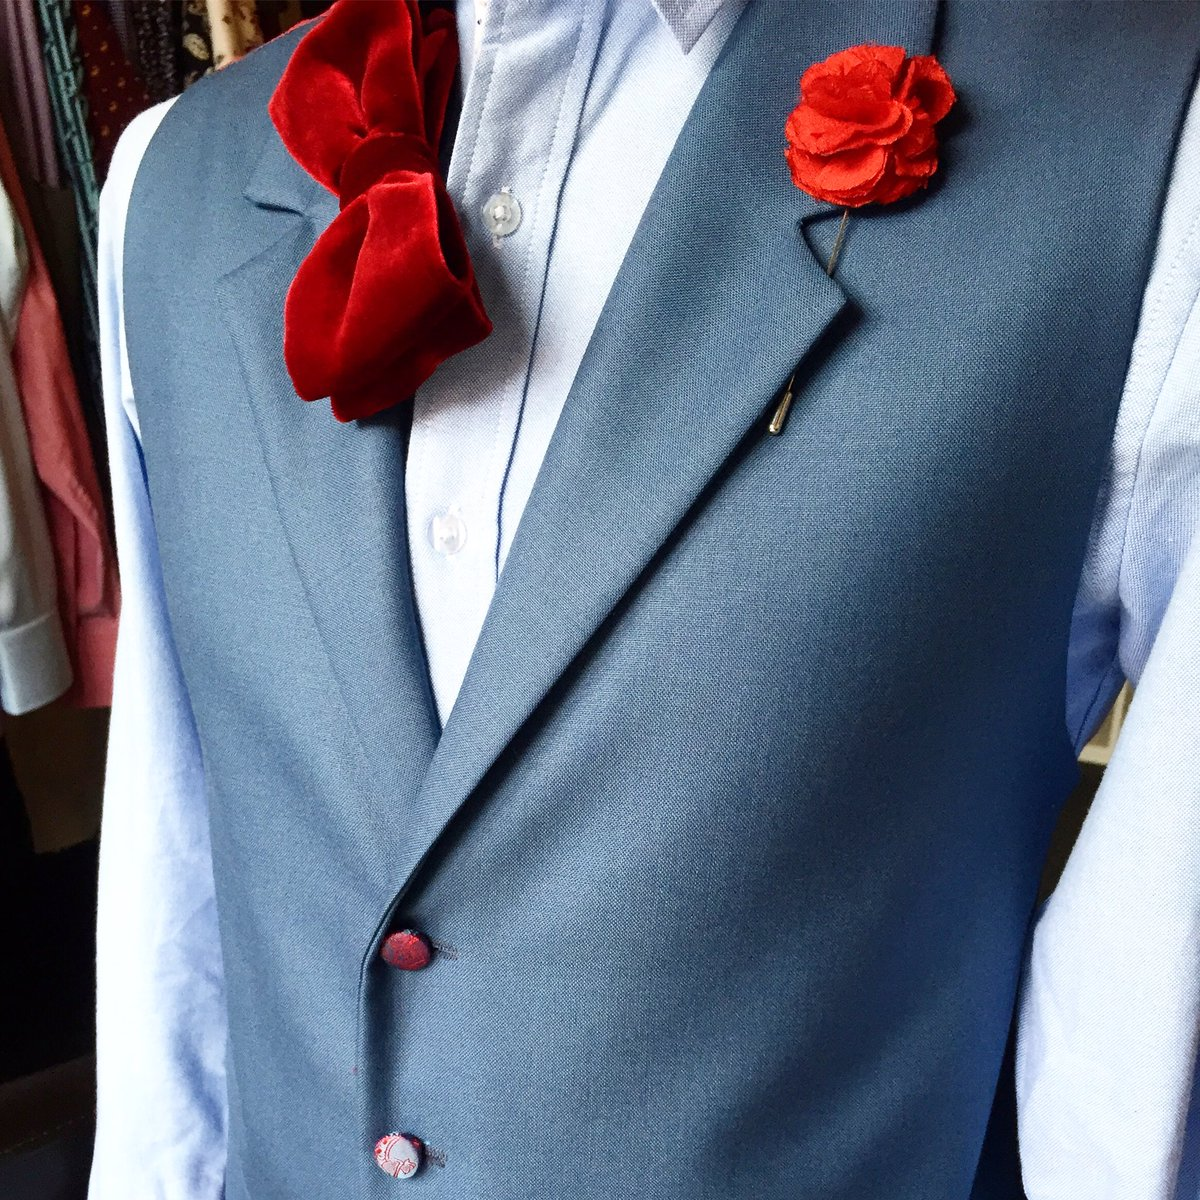 Dandylion style for the special occasion. #dapper #fashion #dandylionstyle #bespokewaistcoat #tailoring #sussextailors #funky #cool #dapperpic.twitter.com/wEjBvAwwLu